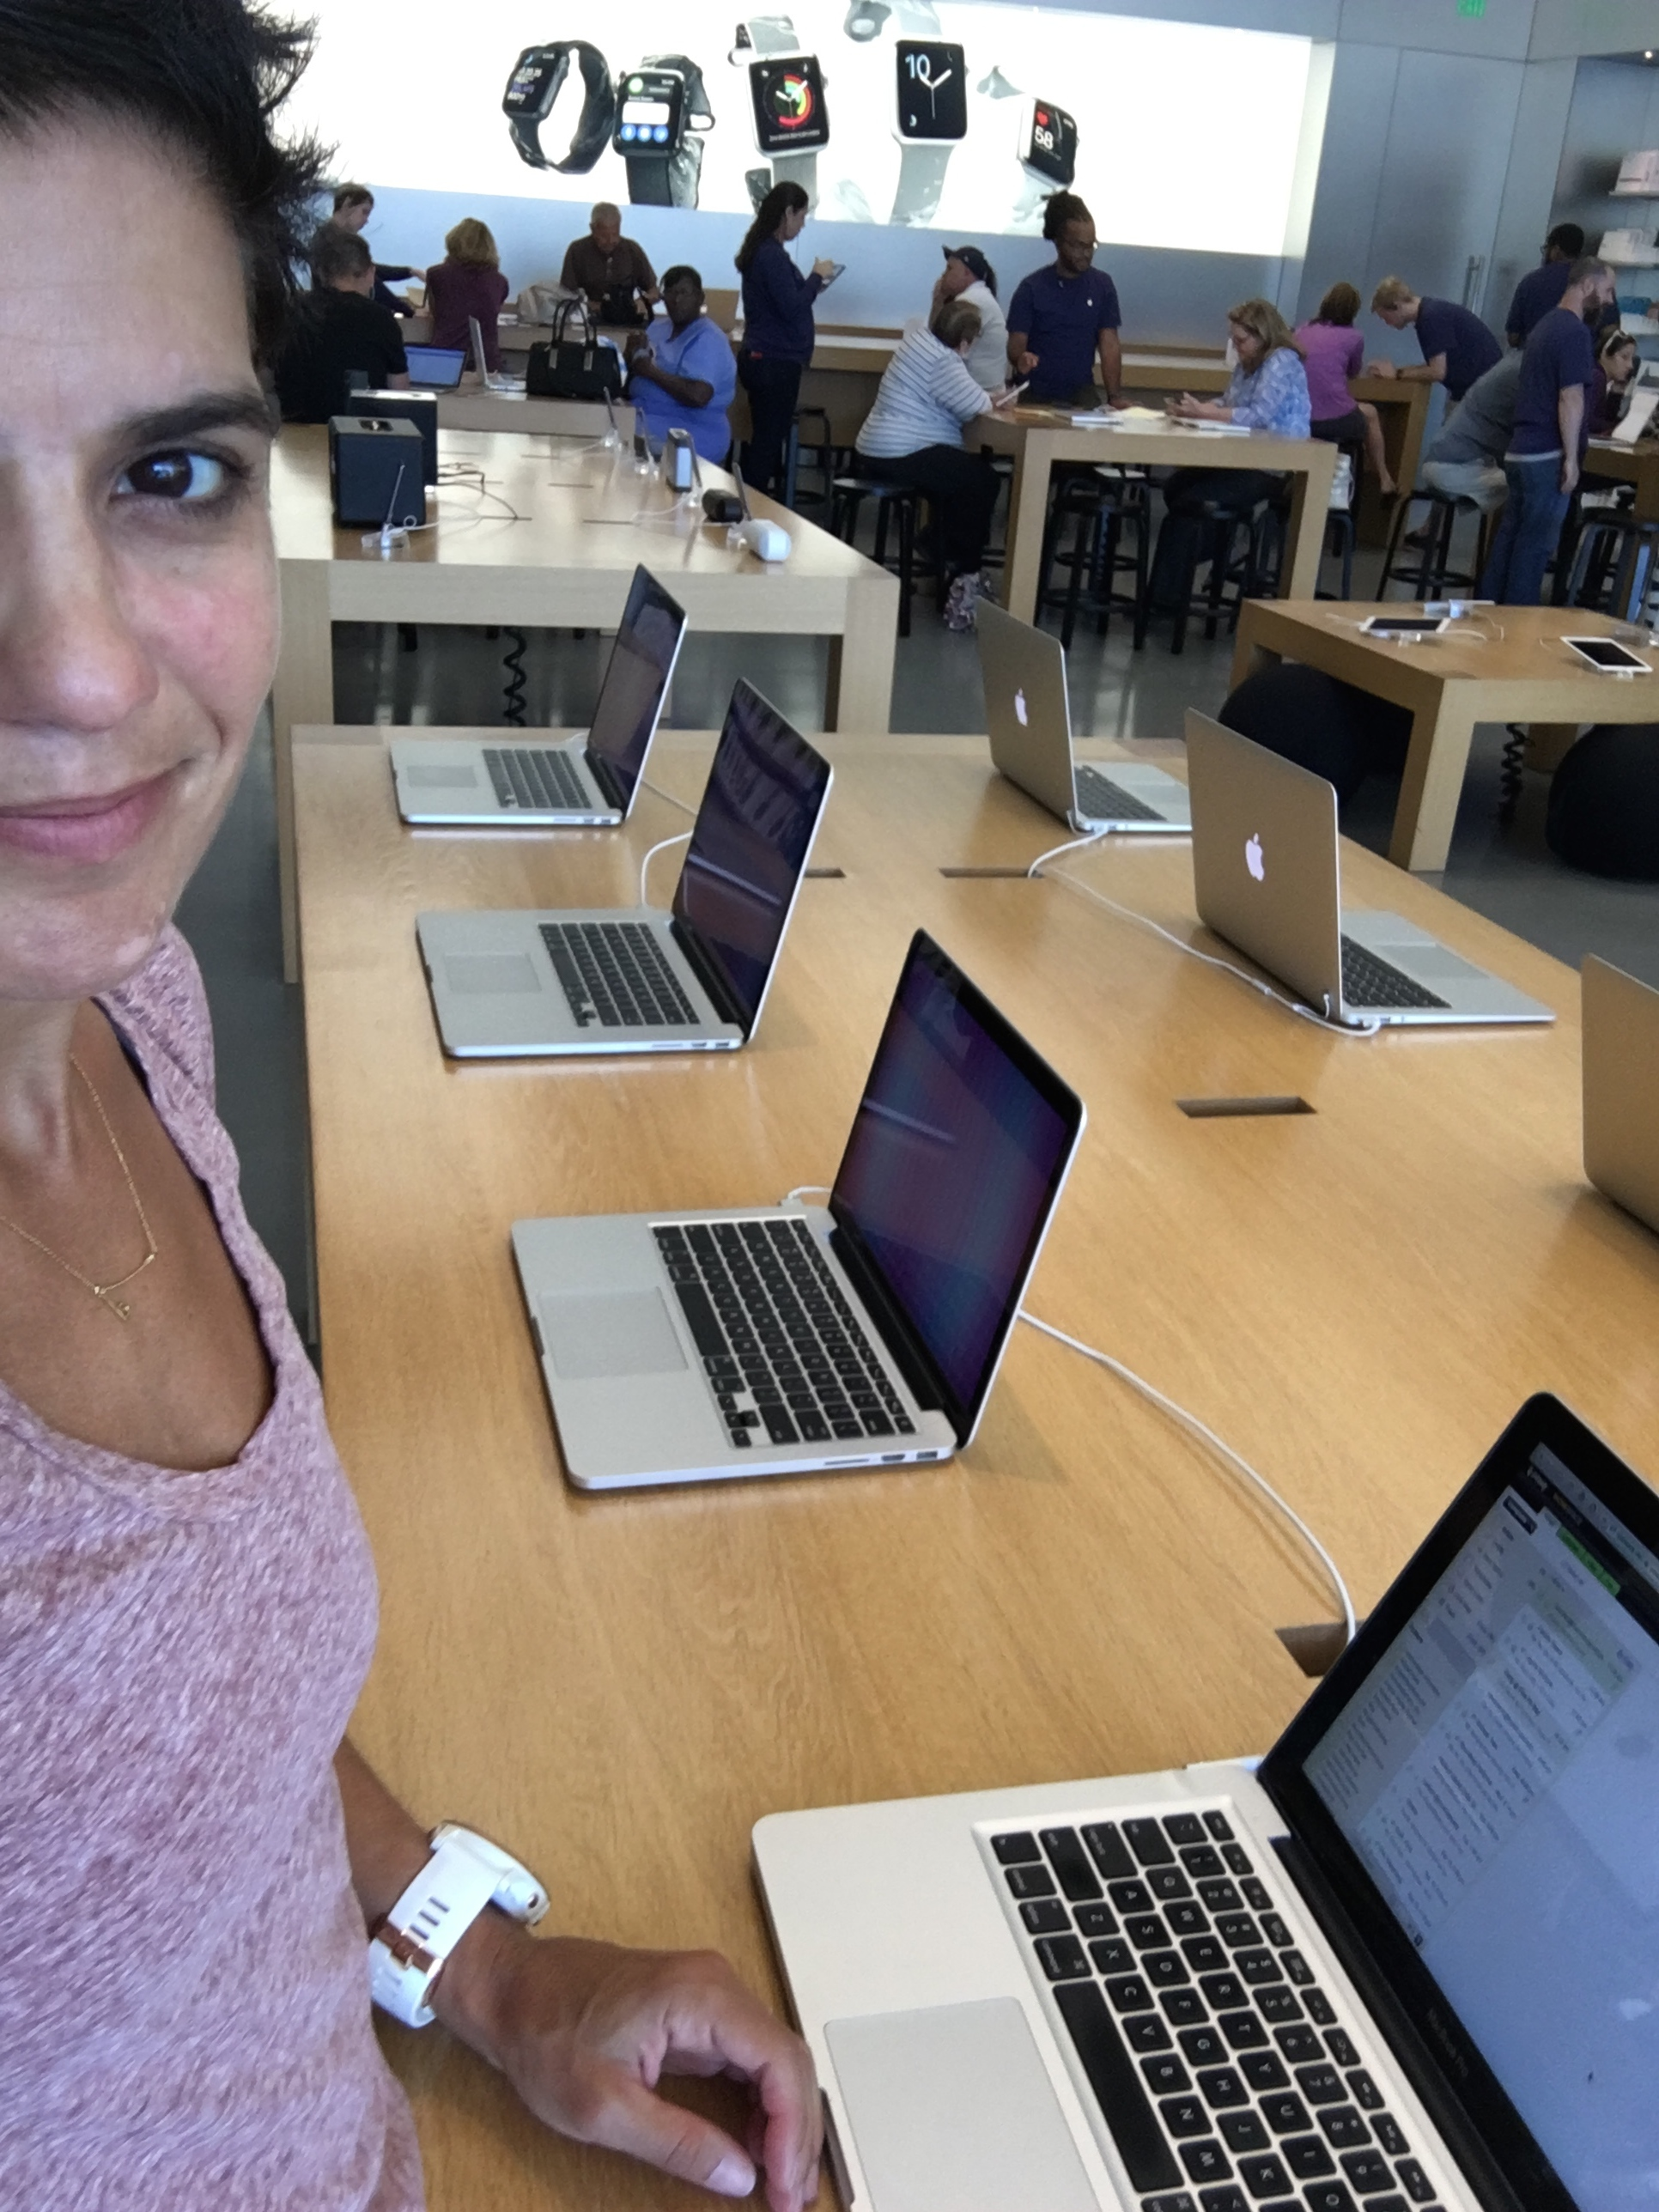 Working on my Mac at the Apple store while I wait for my appointment. #loser